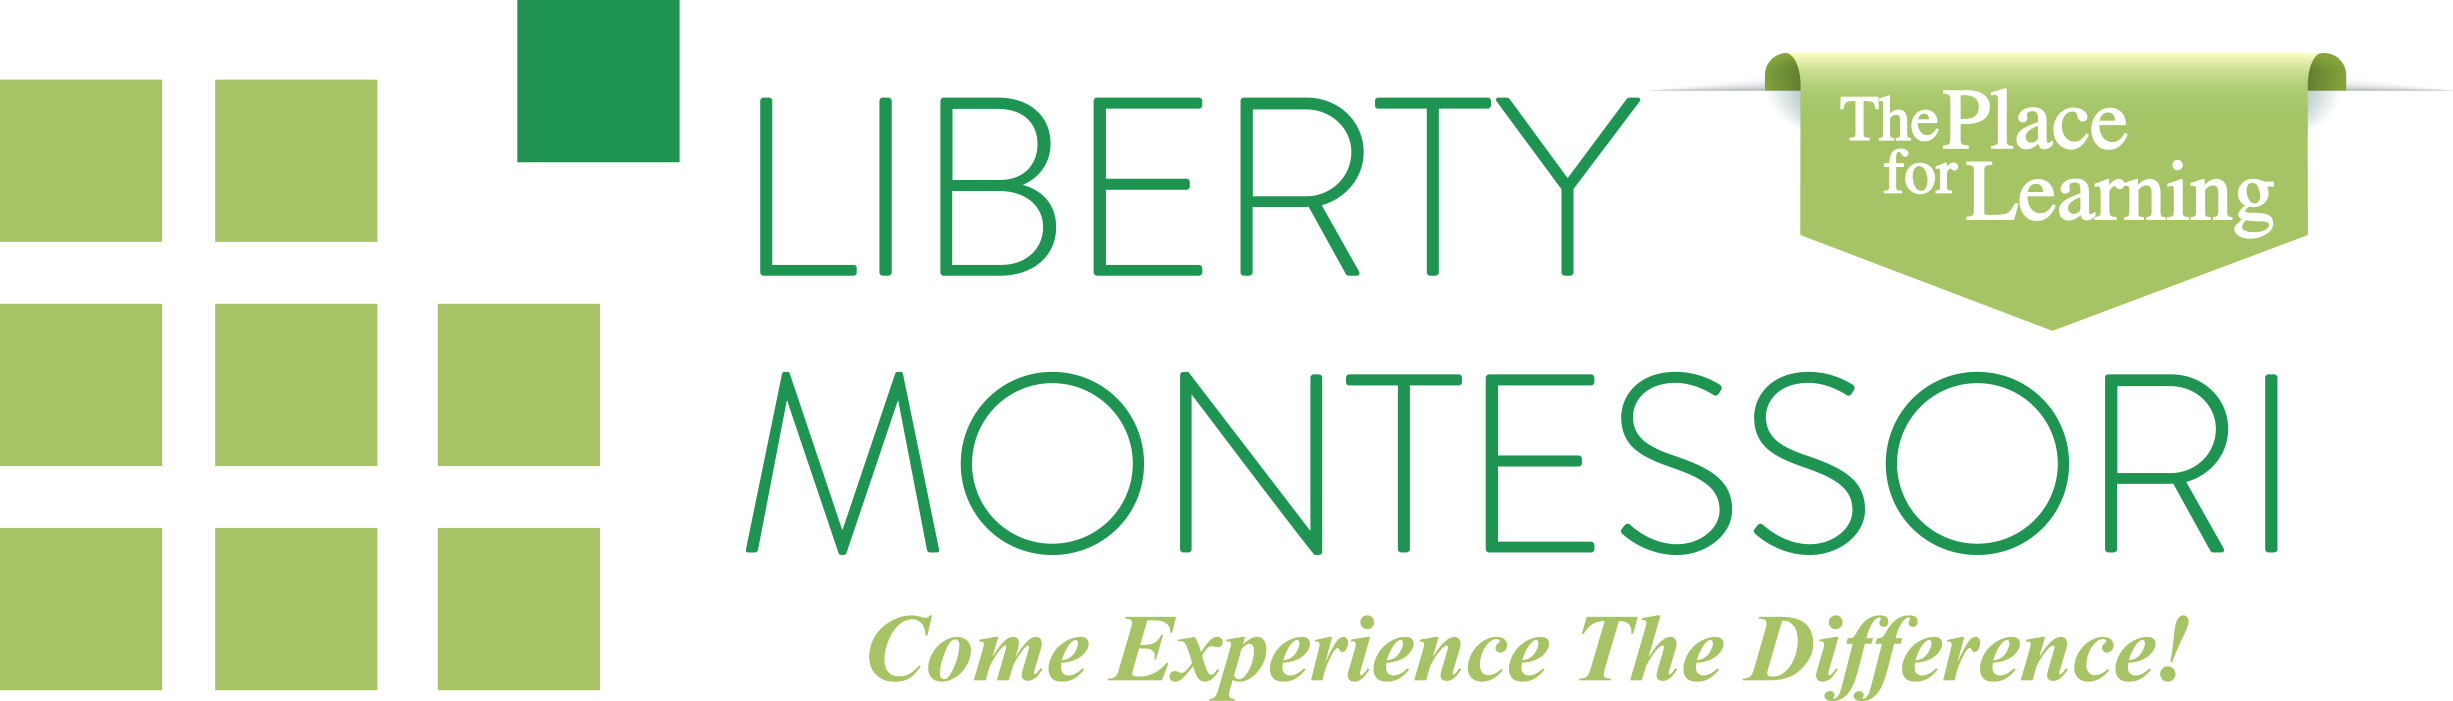 Liberty Montessori - The Place for Learning